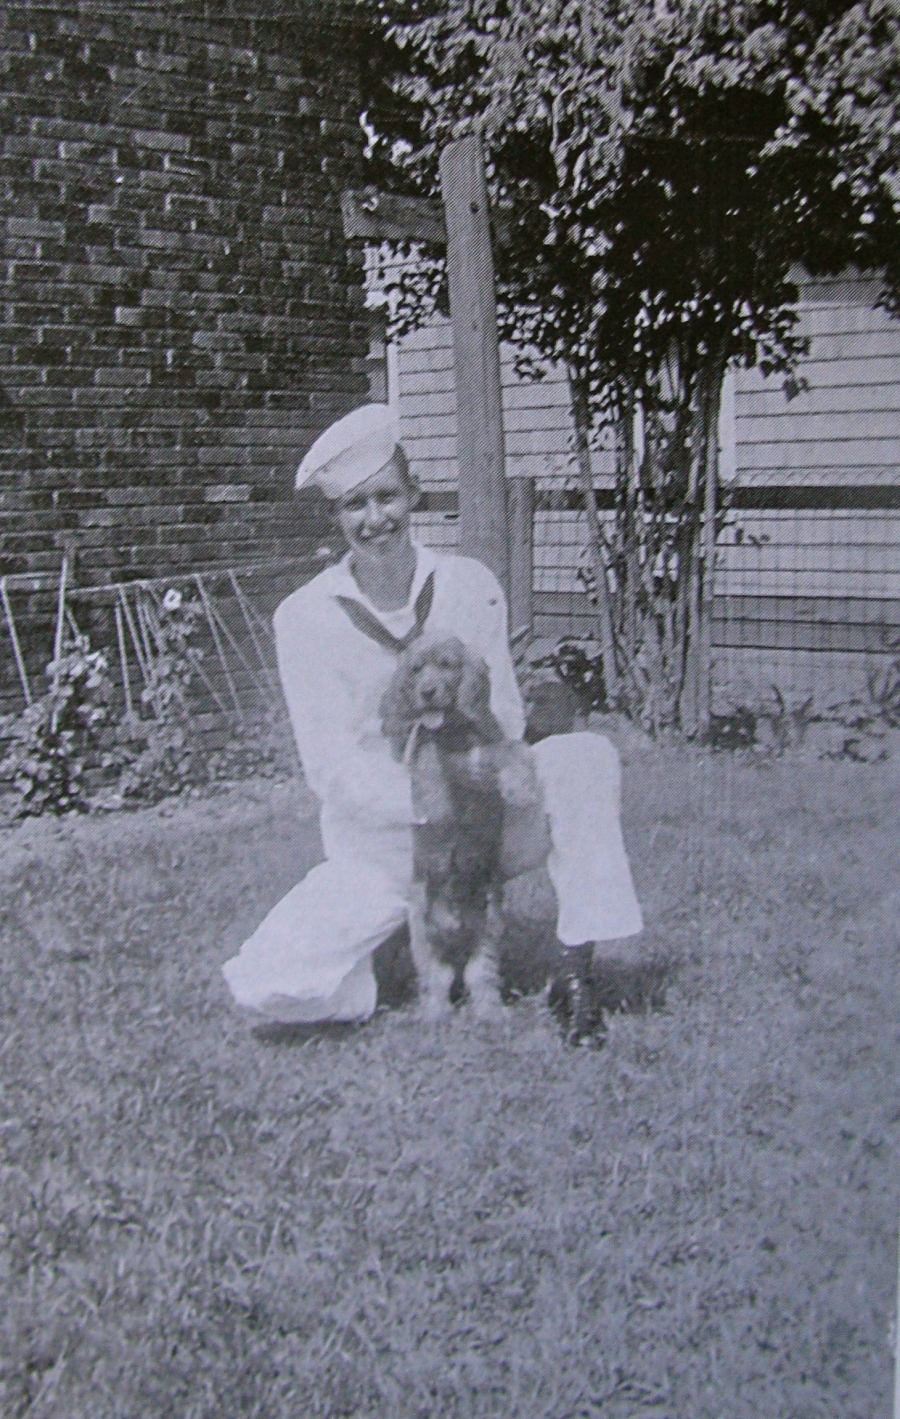 Bob Watts of Port Charlotte, Fla. with his cocker, Rusty, while on leave back home in Detroit, Mich. during the Second World War. Photo provided